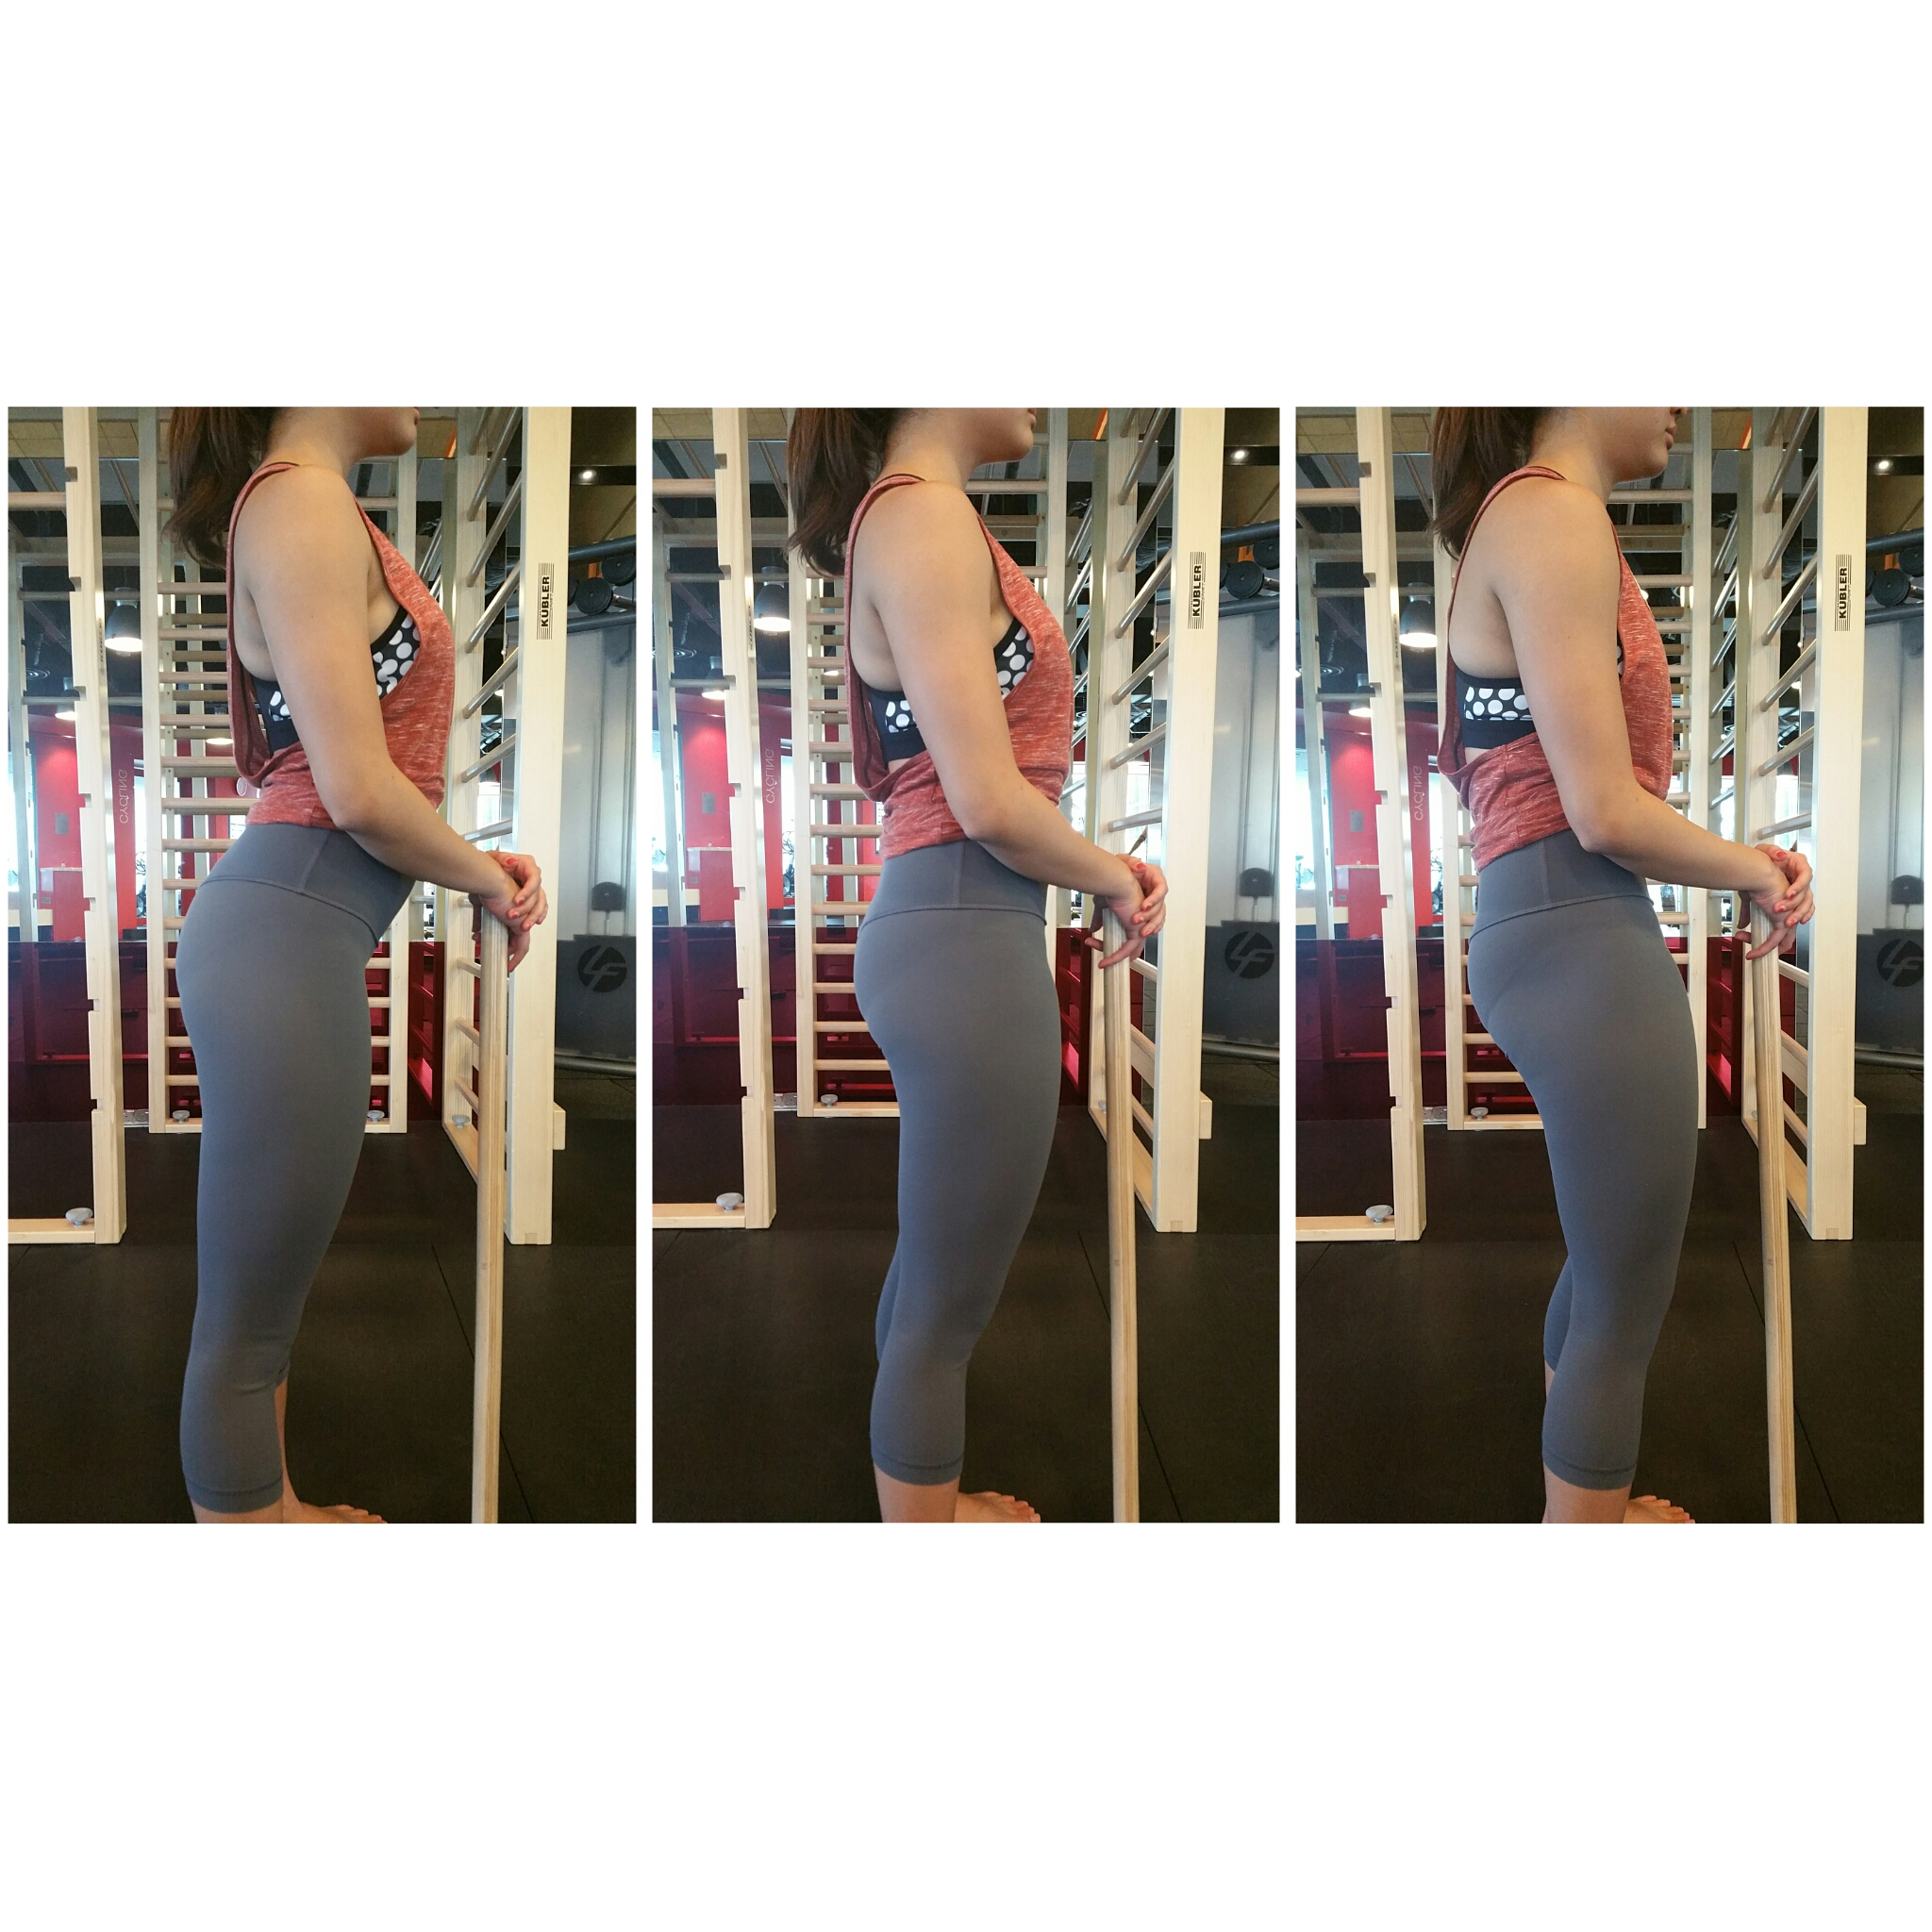 (iii) Pelvic tilt- Simply put, if you are sitting a lot, the front of your hips (hip flexors) will be tight and so will be your lower back. Your butt will be drawn back which results in an 'overarch' of the lower back.